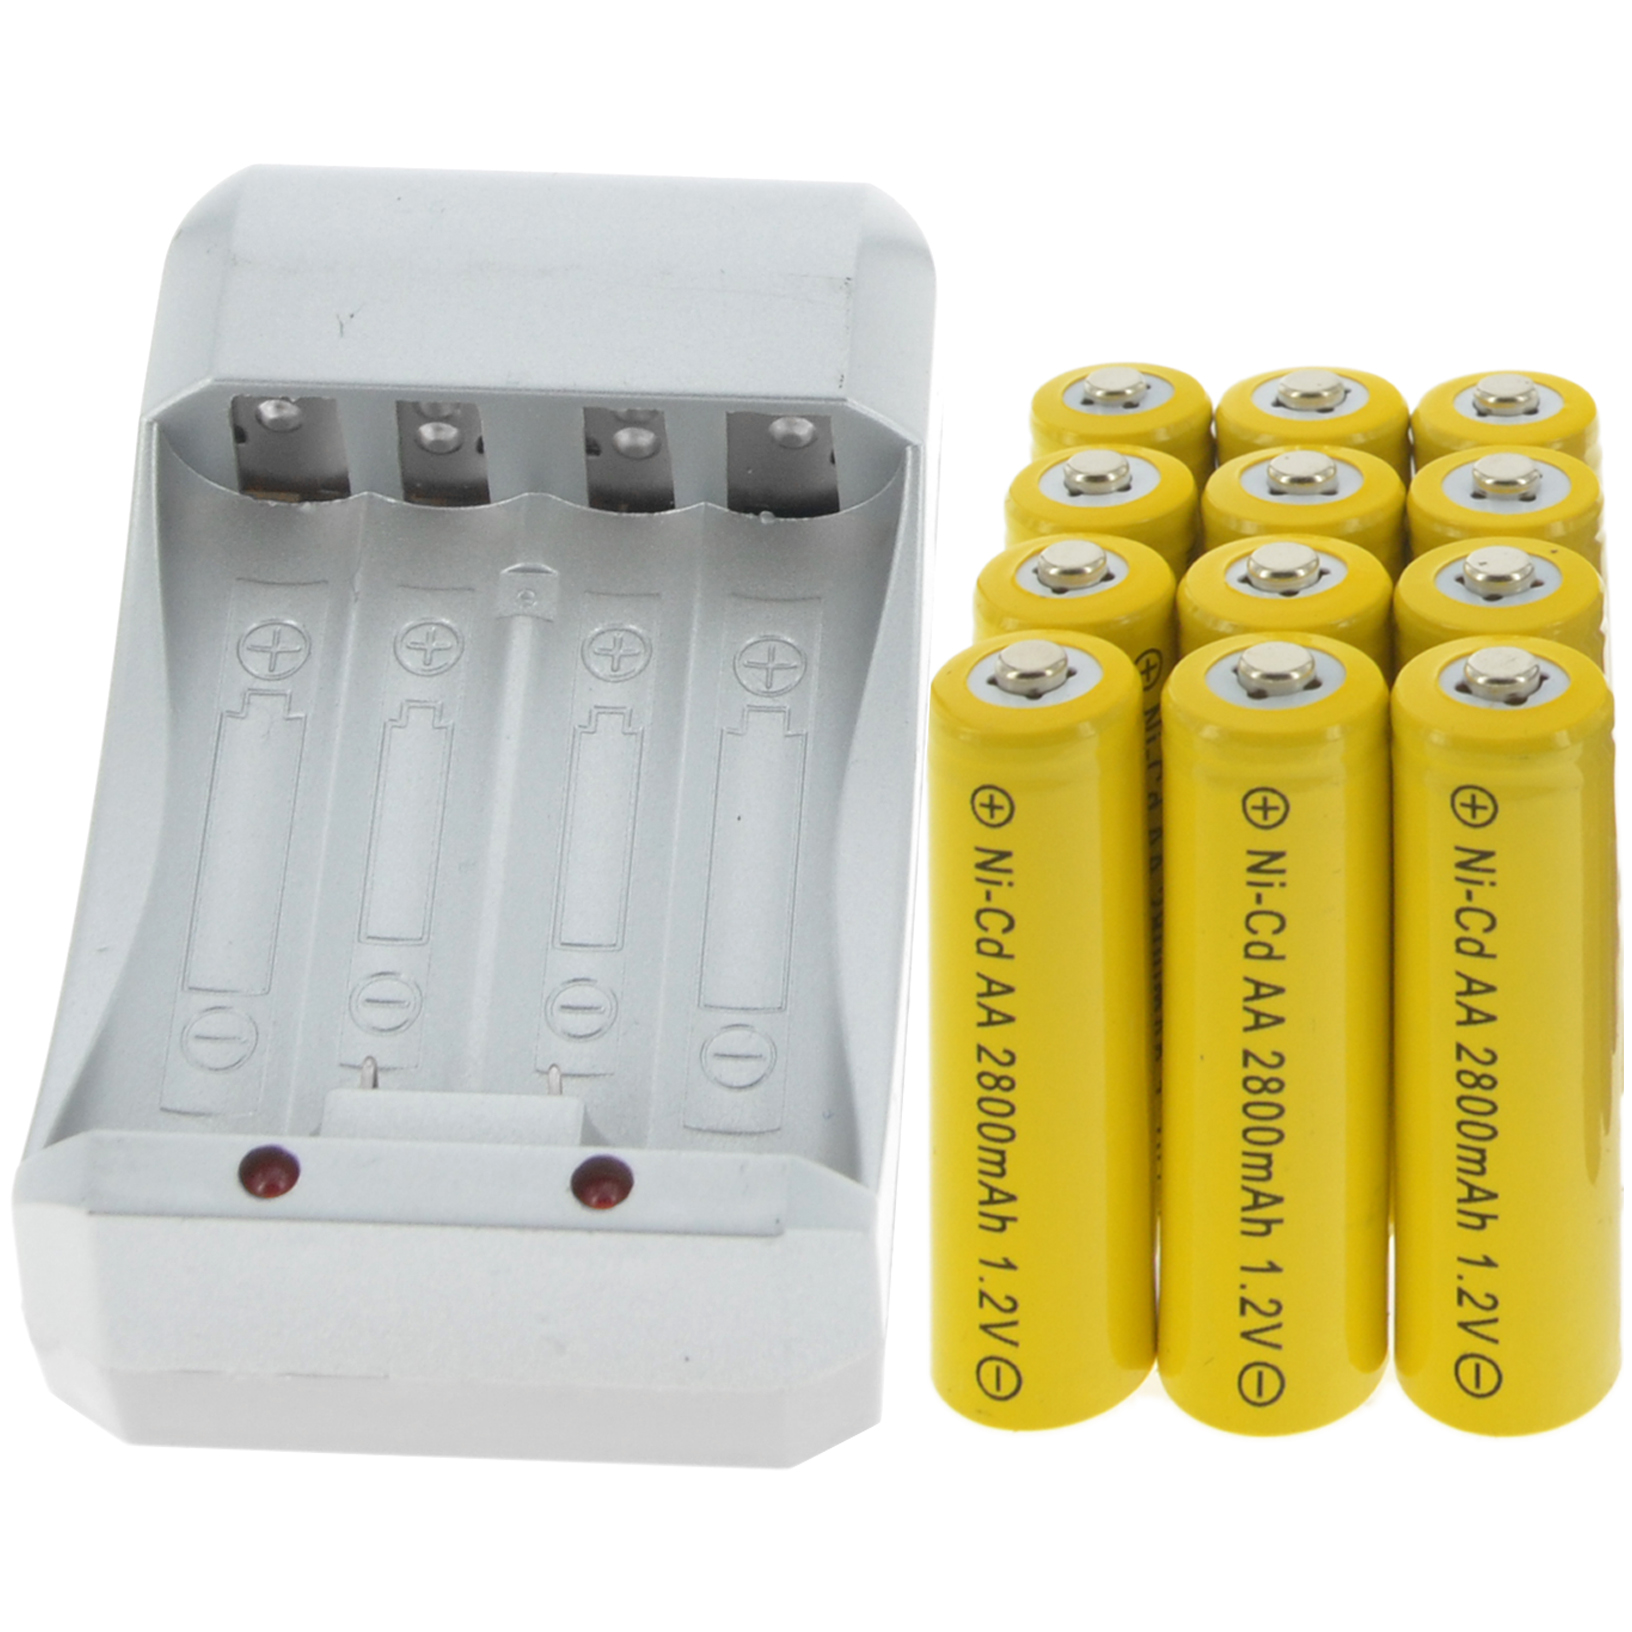 12x AA 2800mAh 1.2V Ni-cd YEL Color Rechargeable Battery Cell +Charger 4 Lots